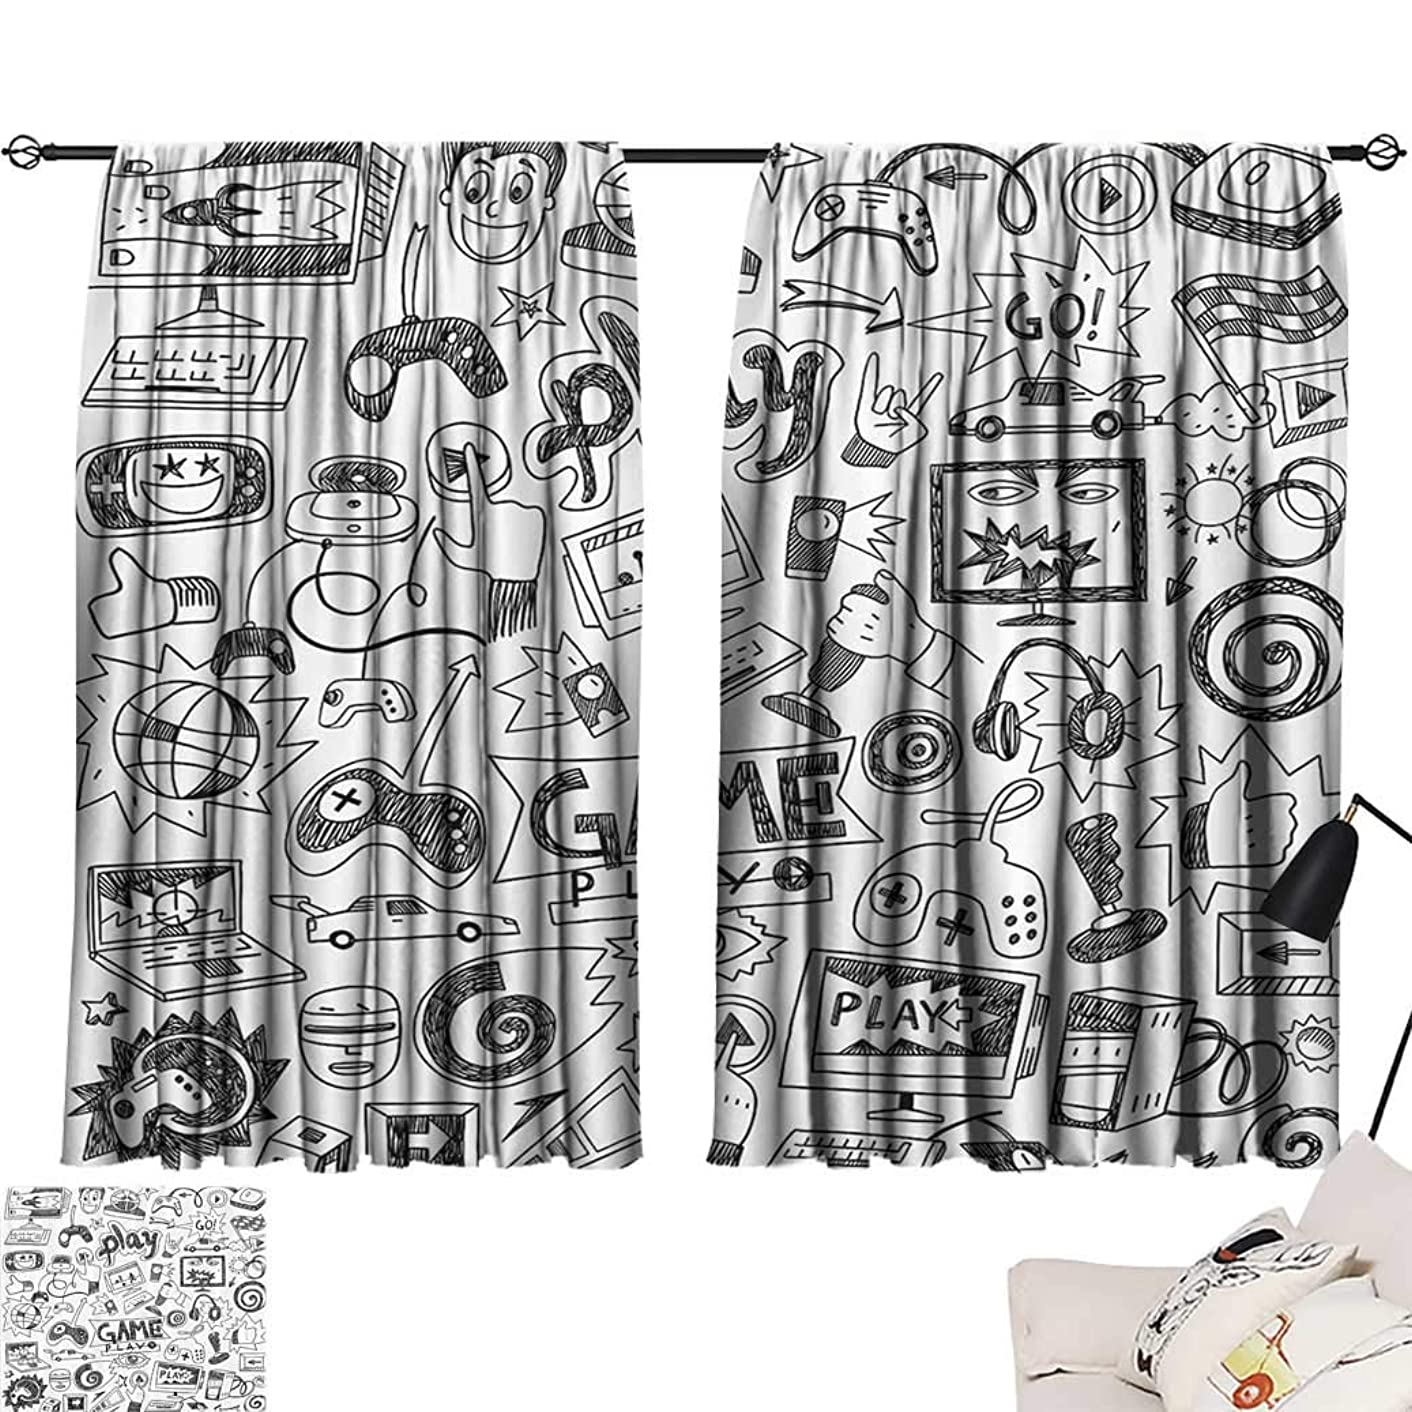 Amazing Video Games Curtains, Black and White Sketch Style Gaming Design Racing Monitor Device Gadget Teen 90s Window Treatments for Bedroom 2 Panels Set, Each Panel 26